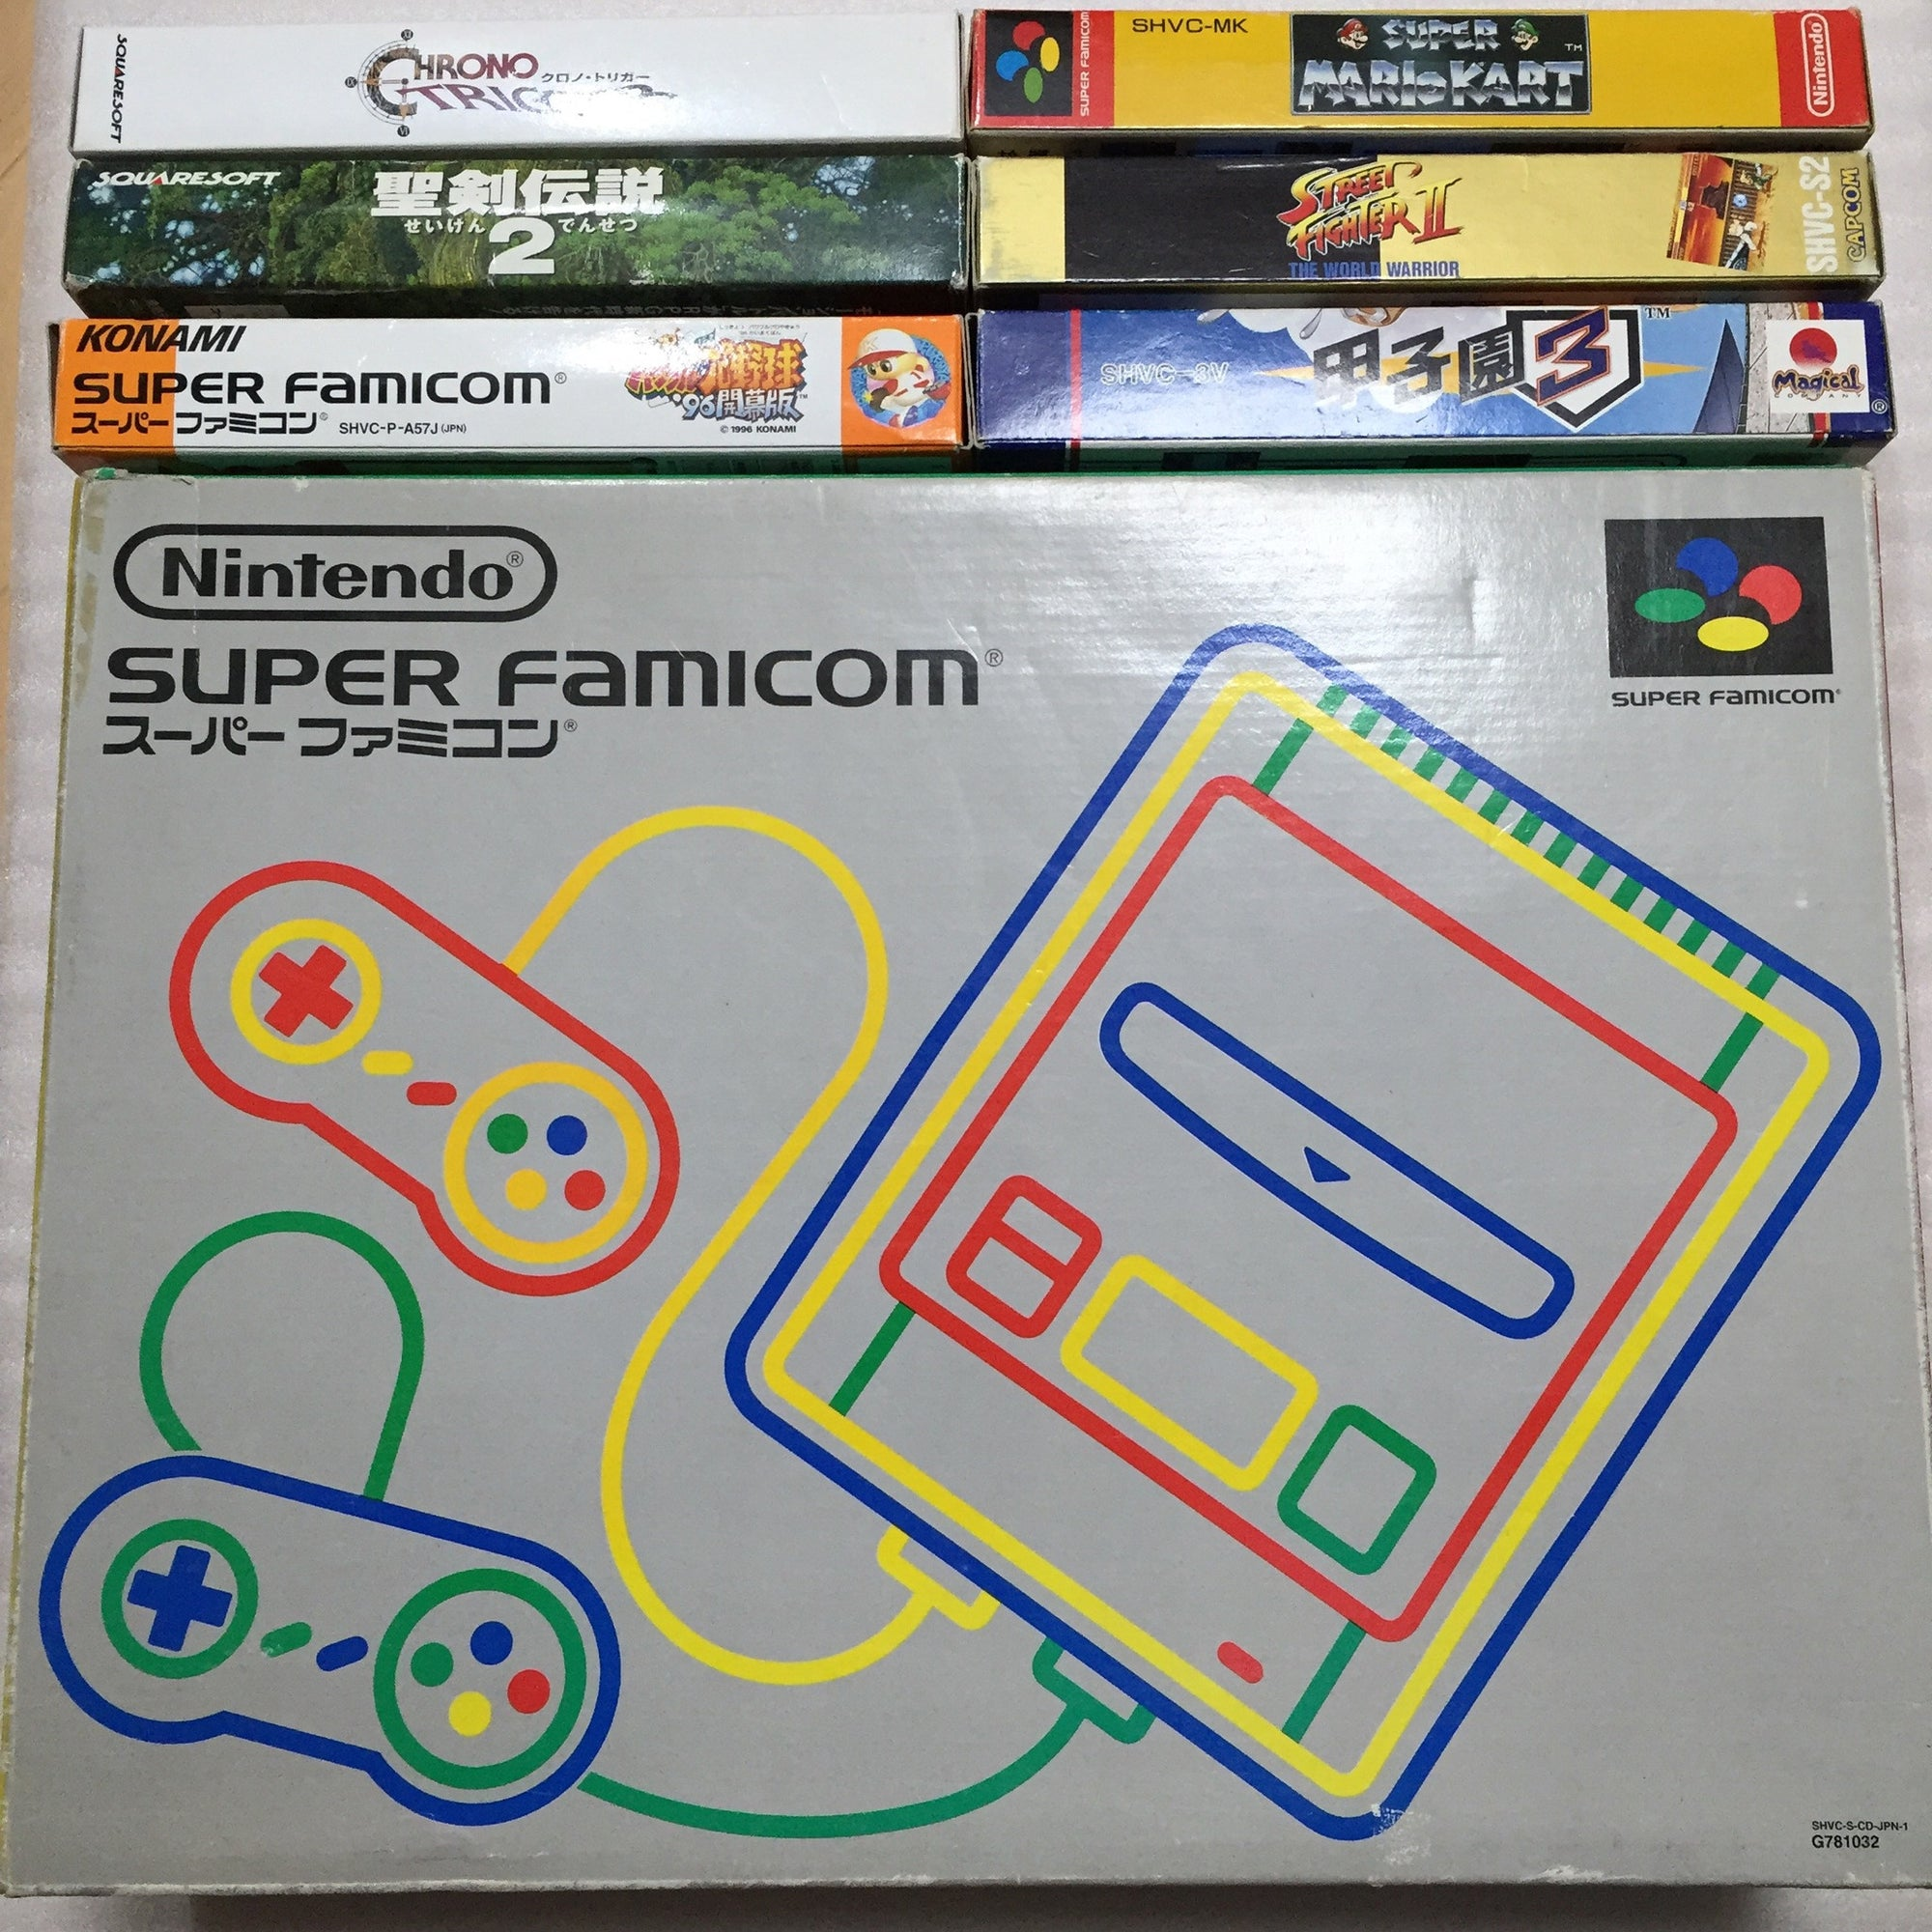 1 CHIP Super Famicom - set with 6 games - RetroAsia - 1